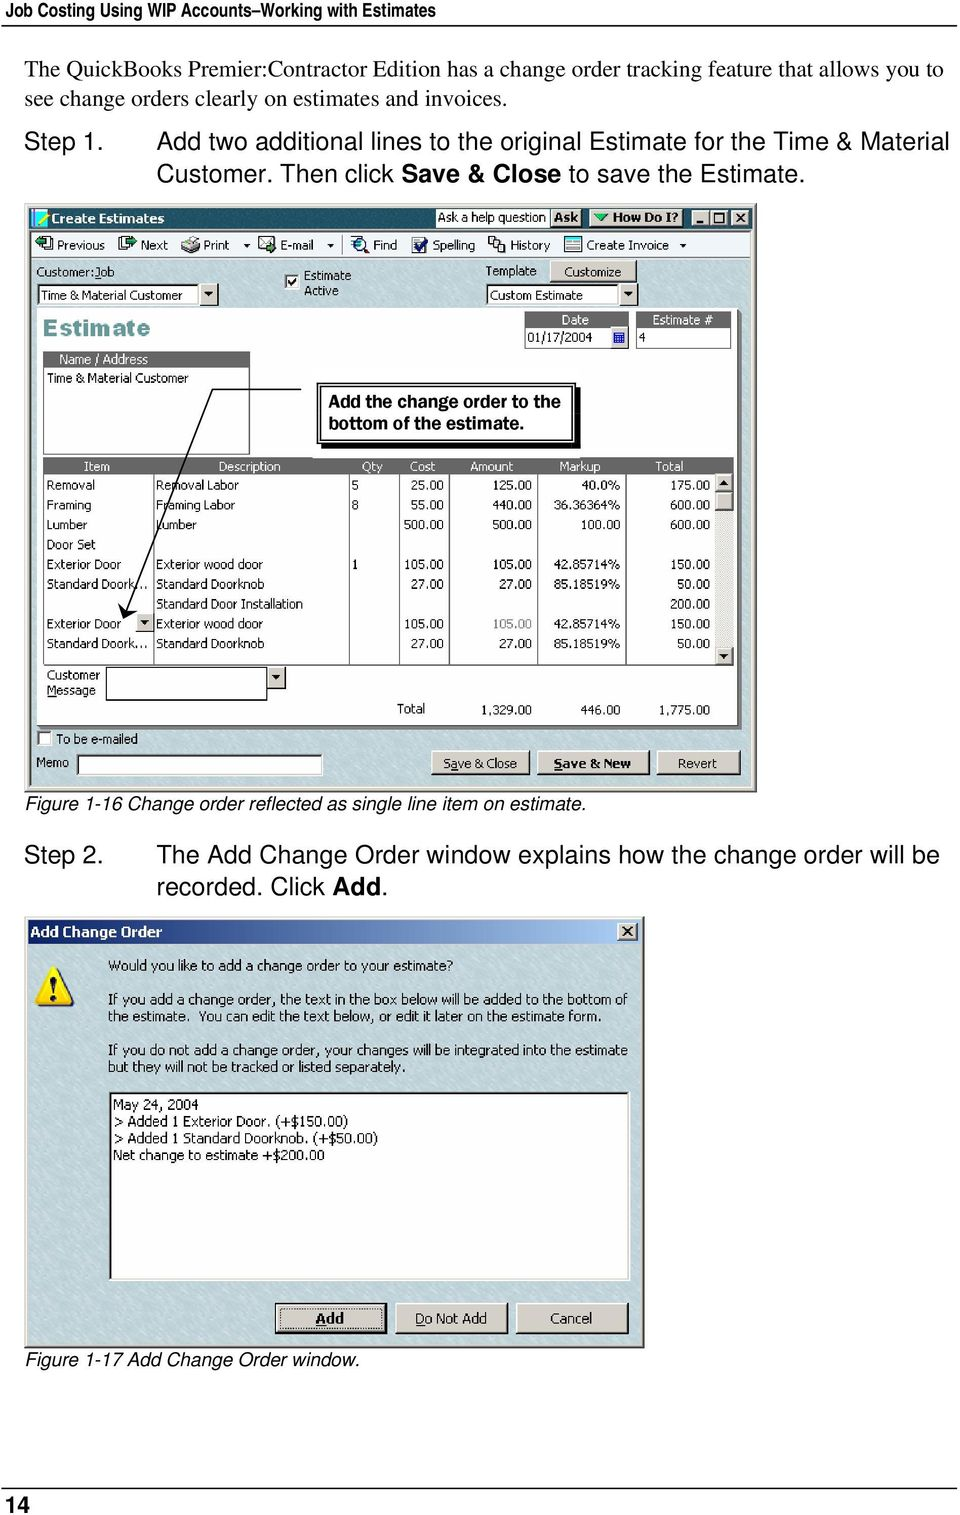 Then click Save & Close to save the Estimate. Add the change order to the bottom of the estimate.